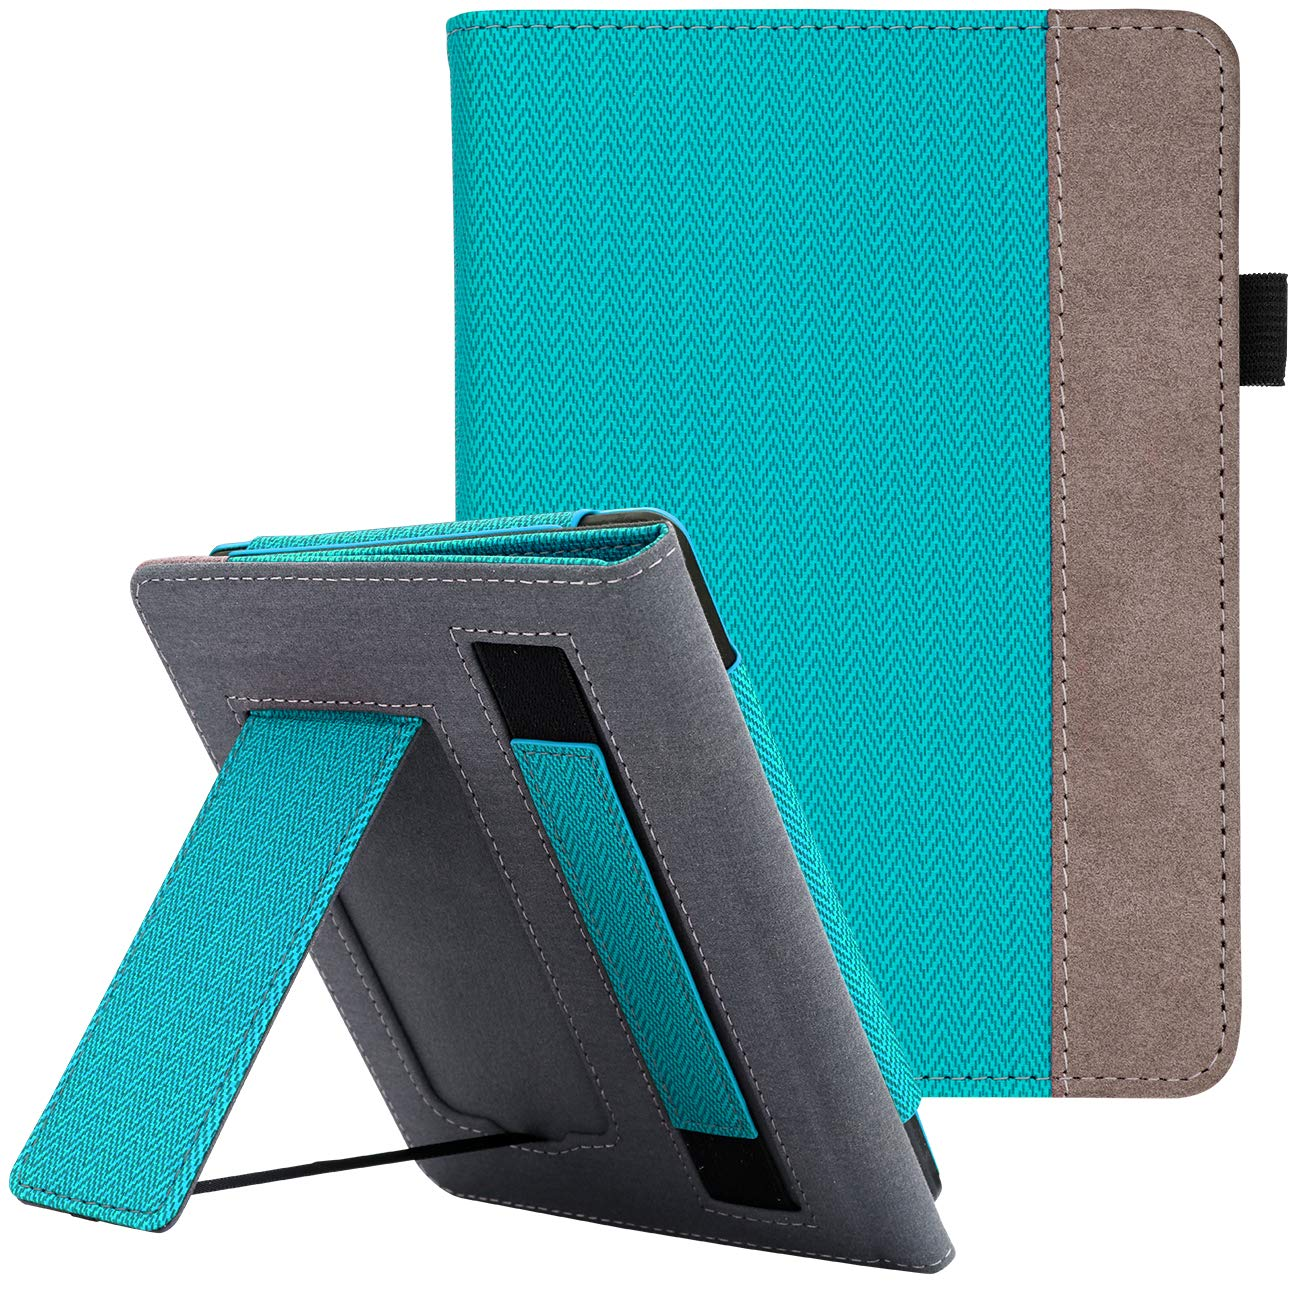 WALNEW Stand Case Fits Kindle Paperwhite 10th Generation 2018 PU Leather Case Smart Protective Cover with Hand Strap (Mint Green)